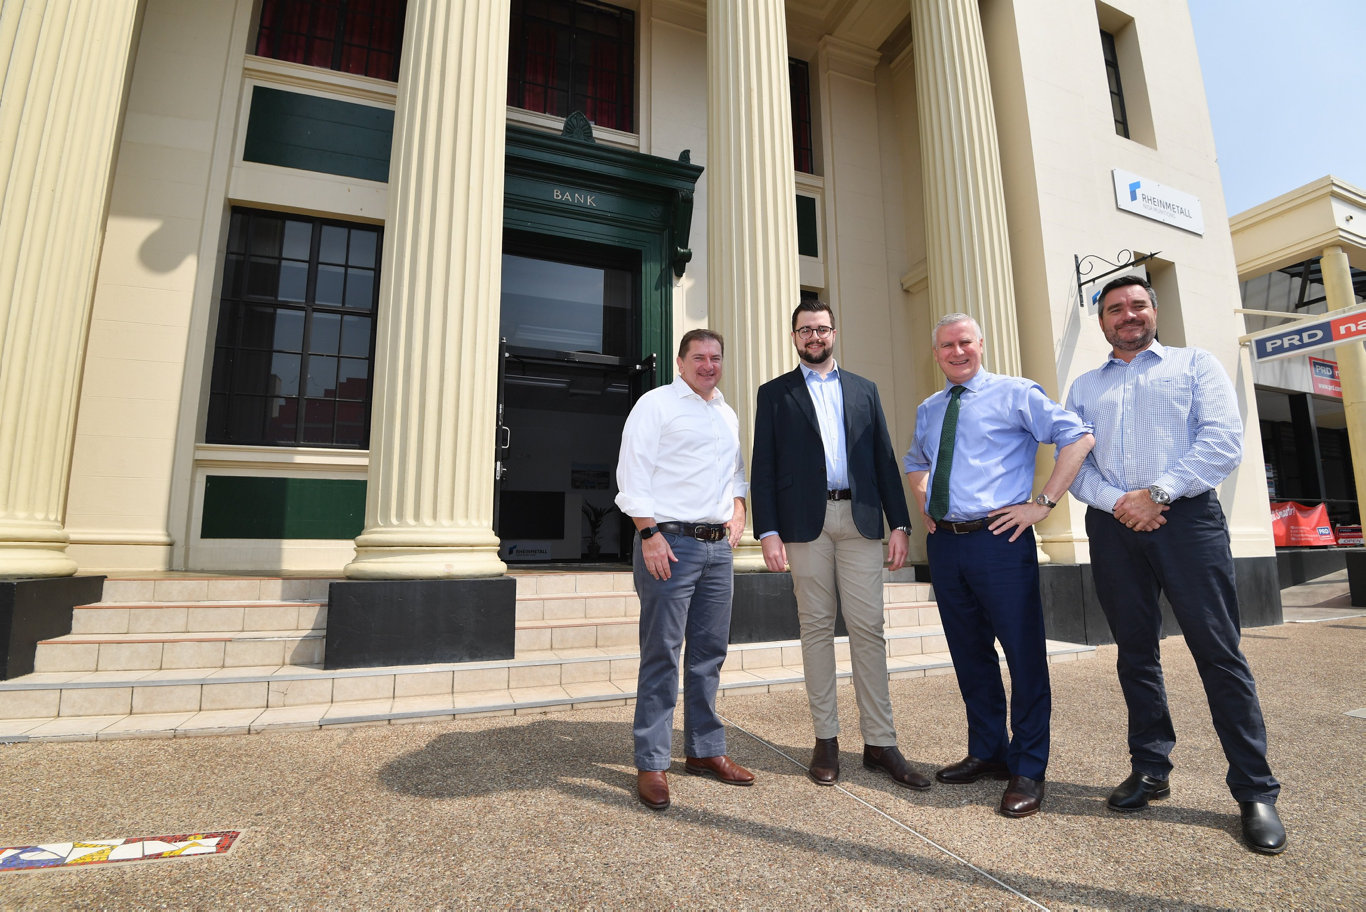 Rheinmetall office in Adelaide st, Maryborough -Member for Wide Bay Llew O'Brien, Rheinmetall director Jackson Nioa, Deputy PM Michael McCormack and project mgr. Jeff Crabtree outside the office. Photo: Alistair Brightman